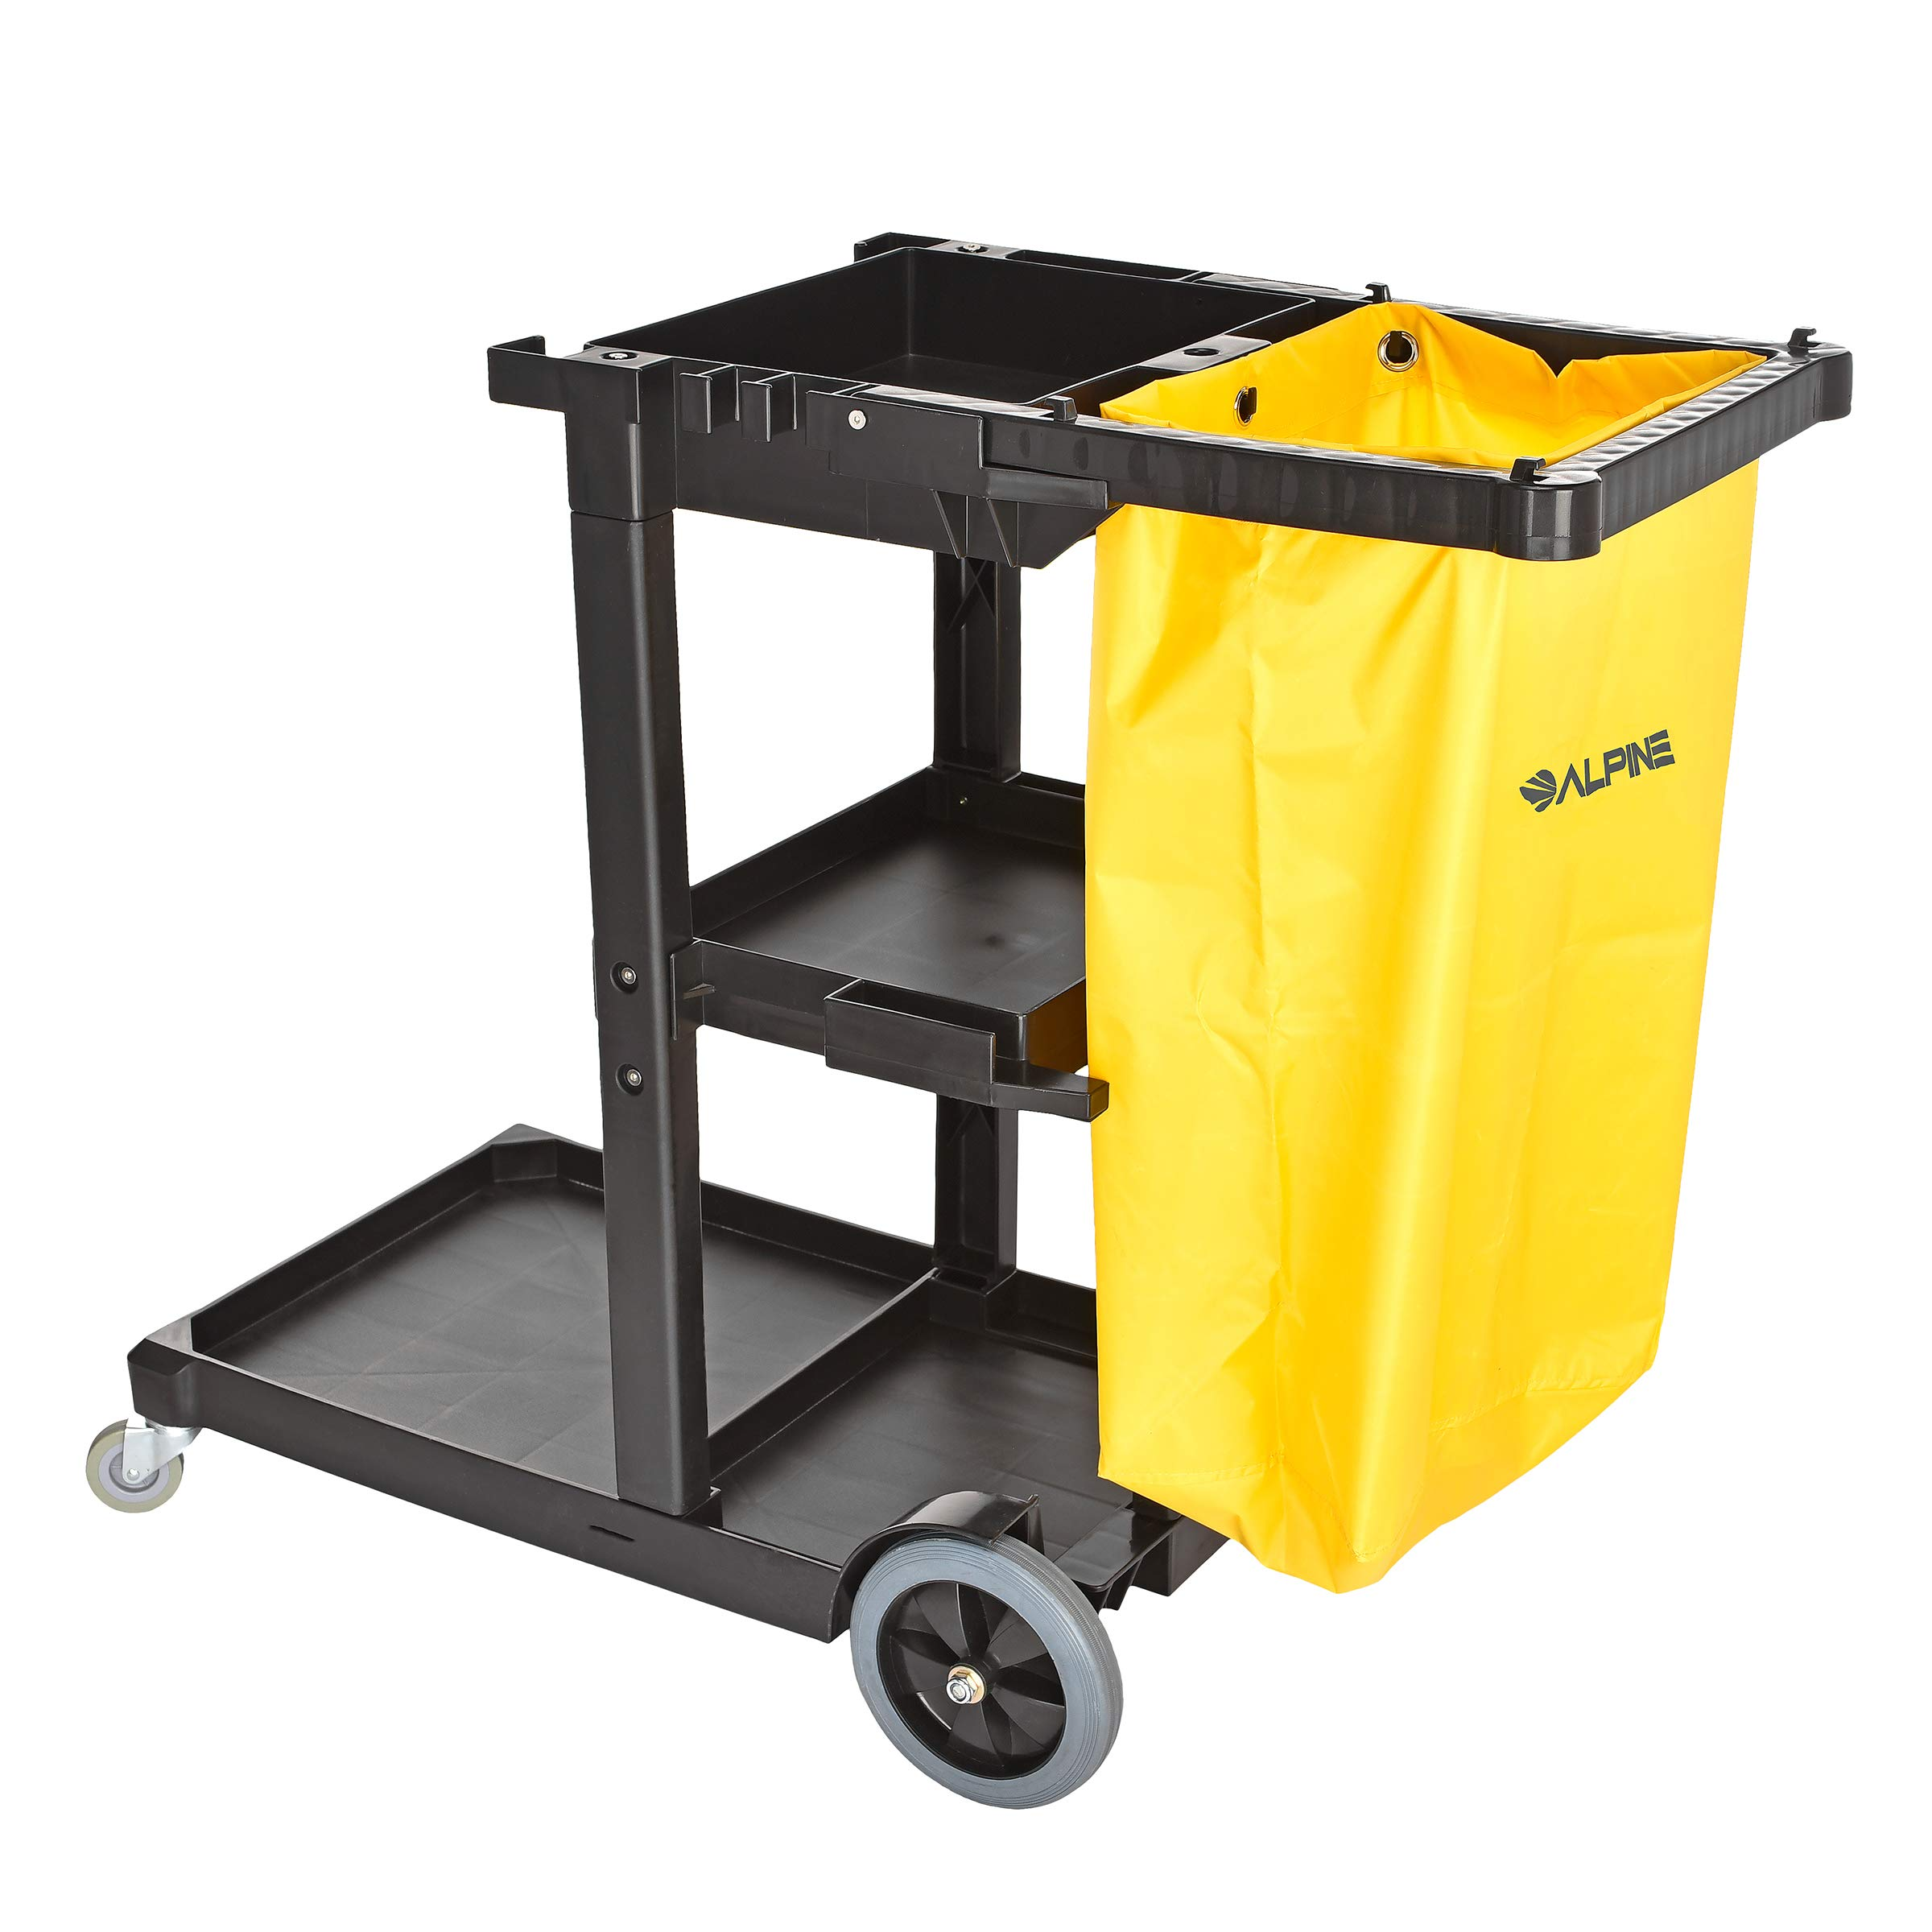 Alpine Industries Traditional Janitorial Cleaning Cart with 3 Shelves - Commercial Rolling Janitor Caddy with Vinyl Bag - Custodial Carts for Housekeeping Business